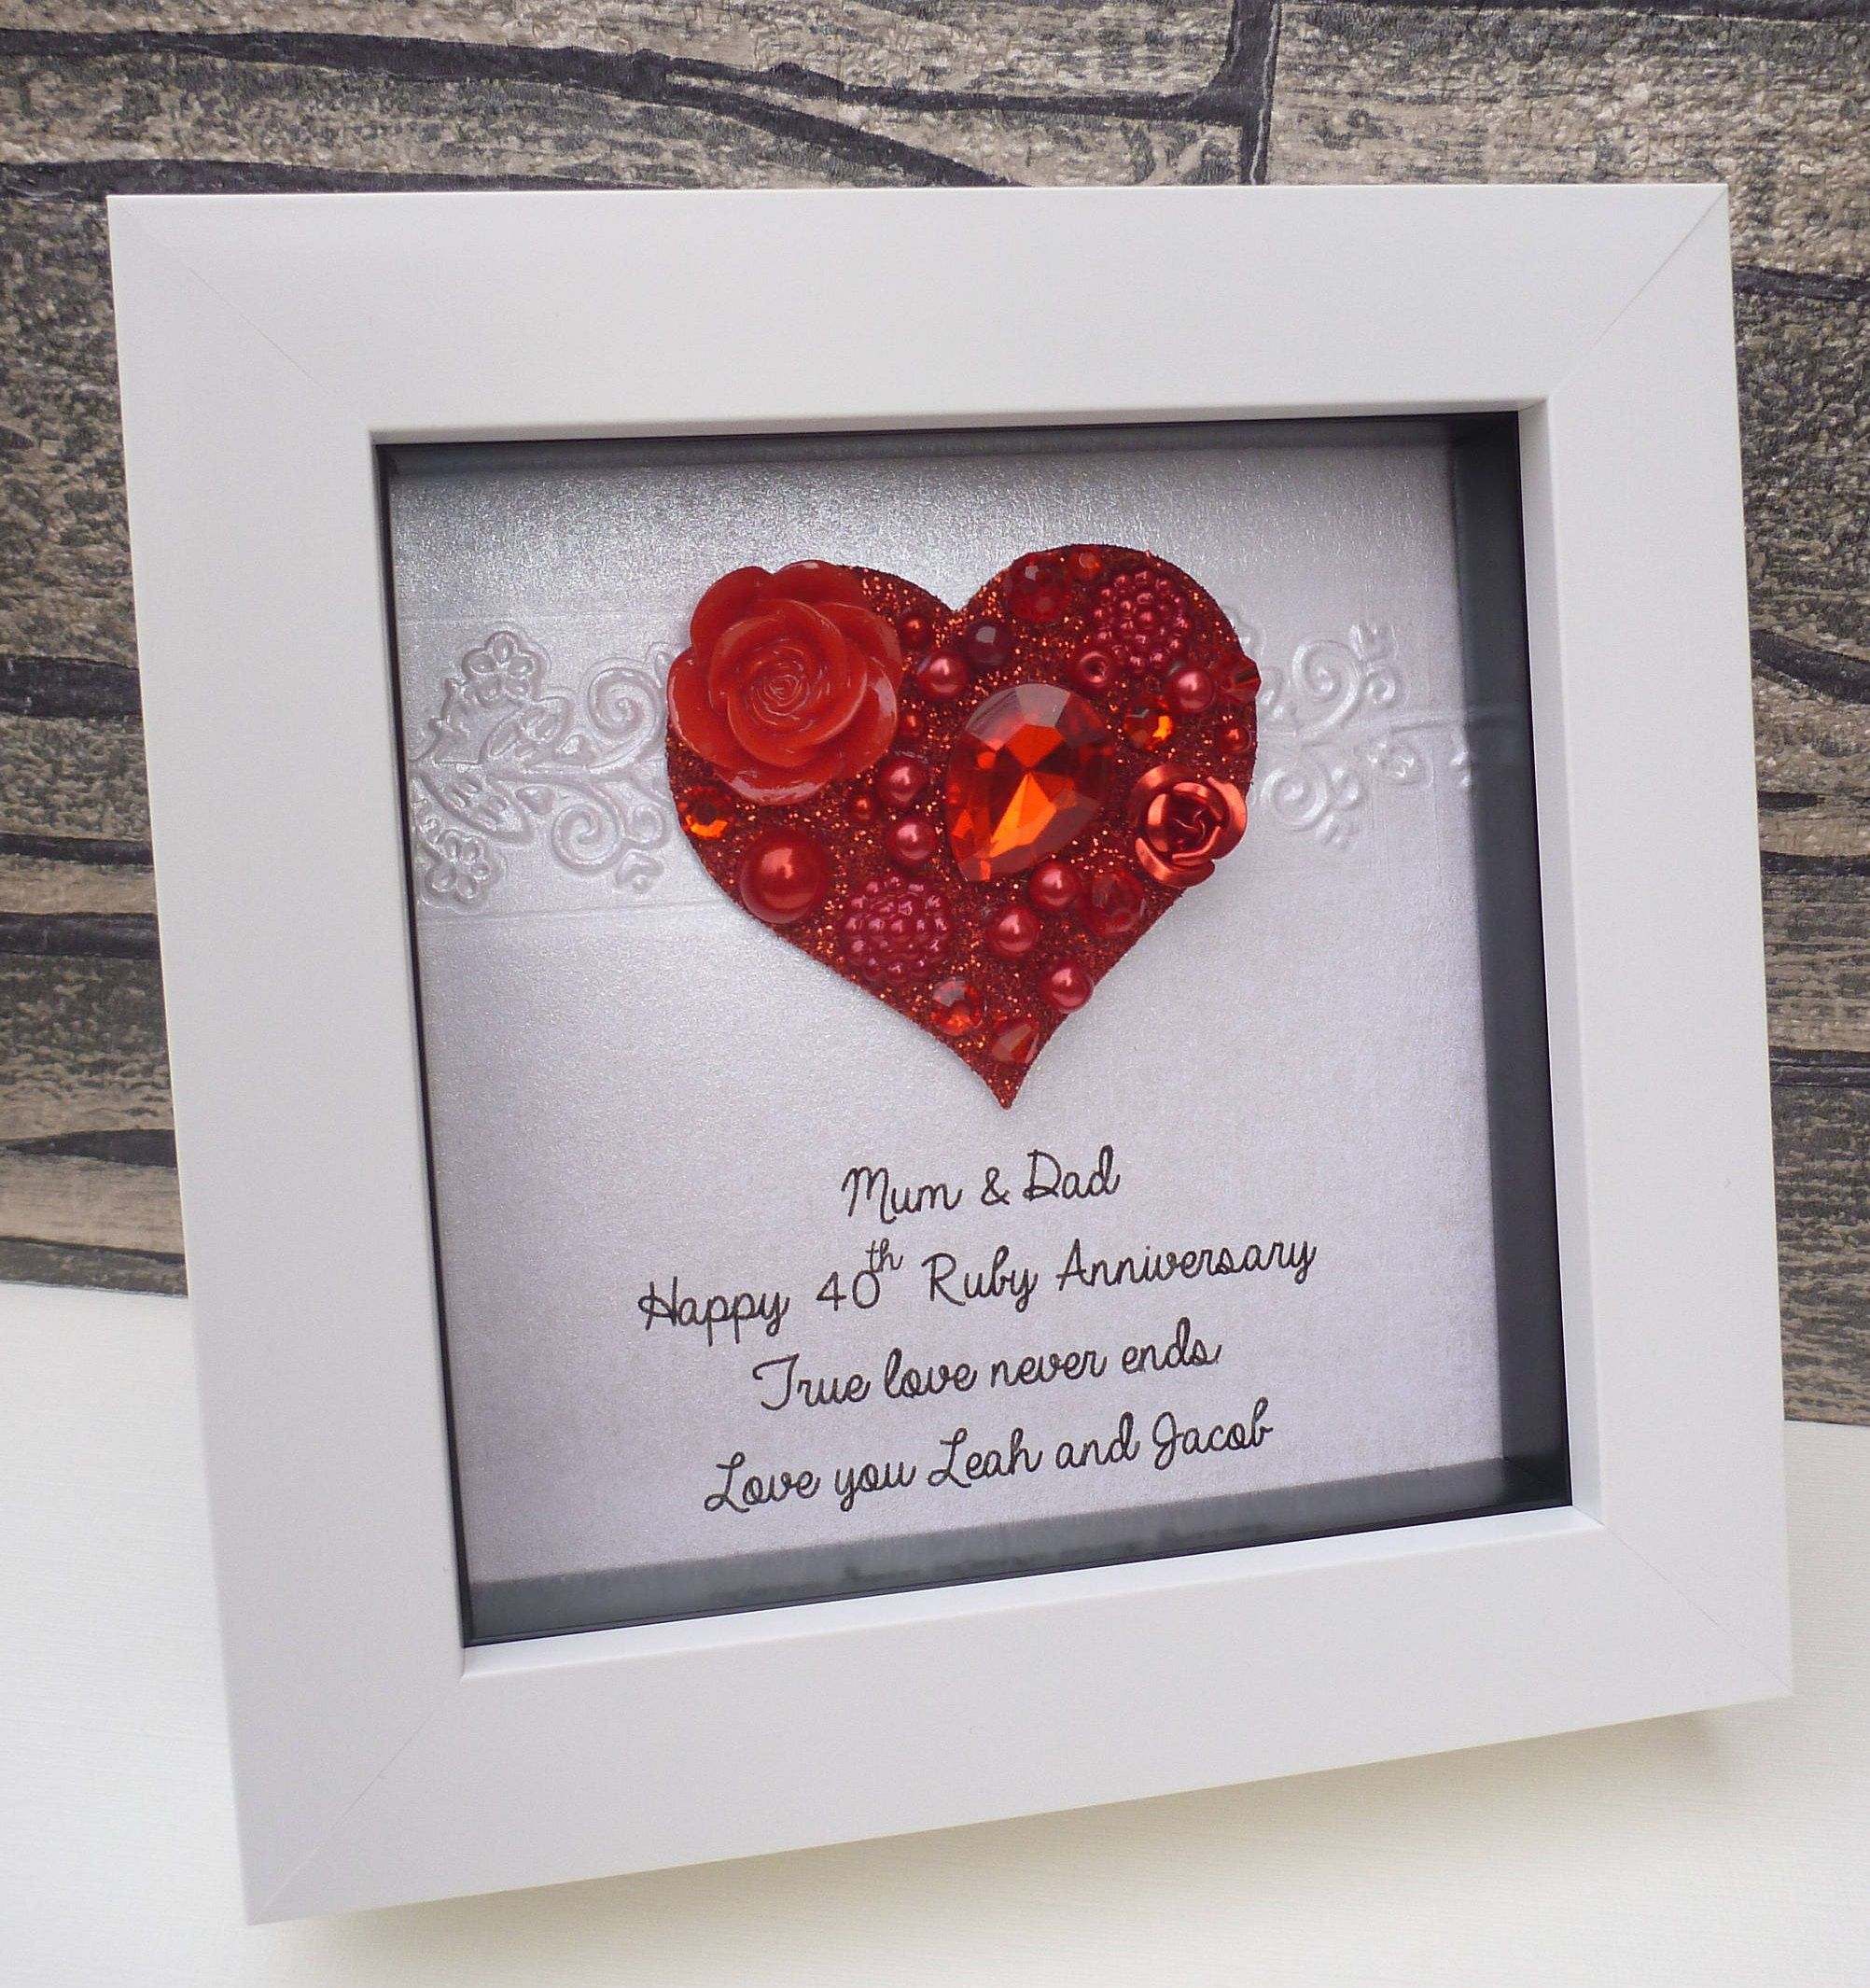 Ruby anniversary gift 40th wedding anniversary 40th | Etsy